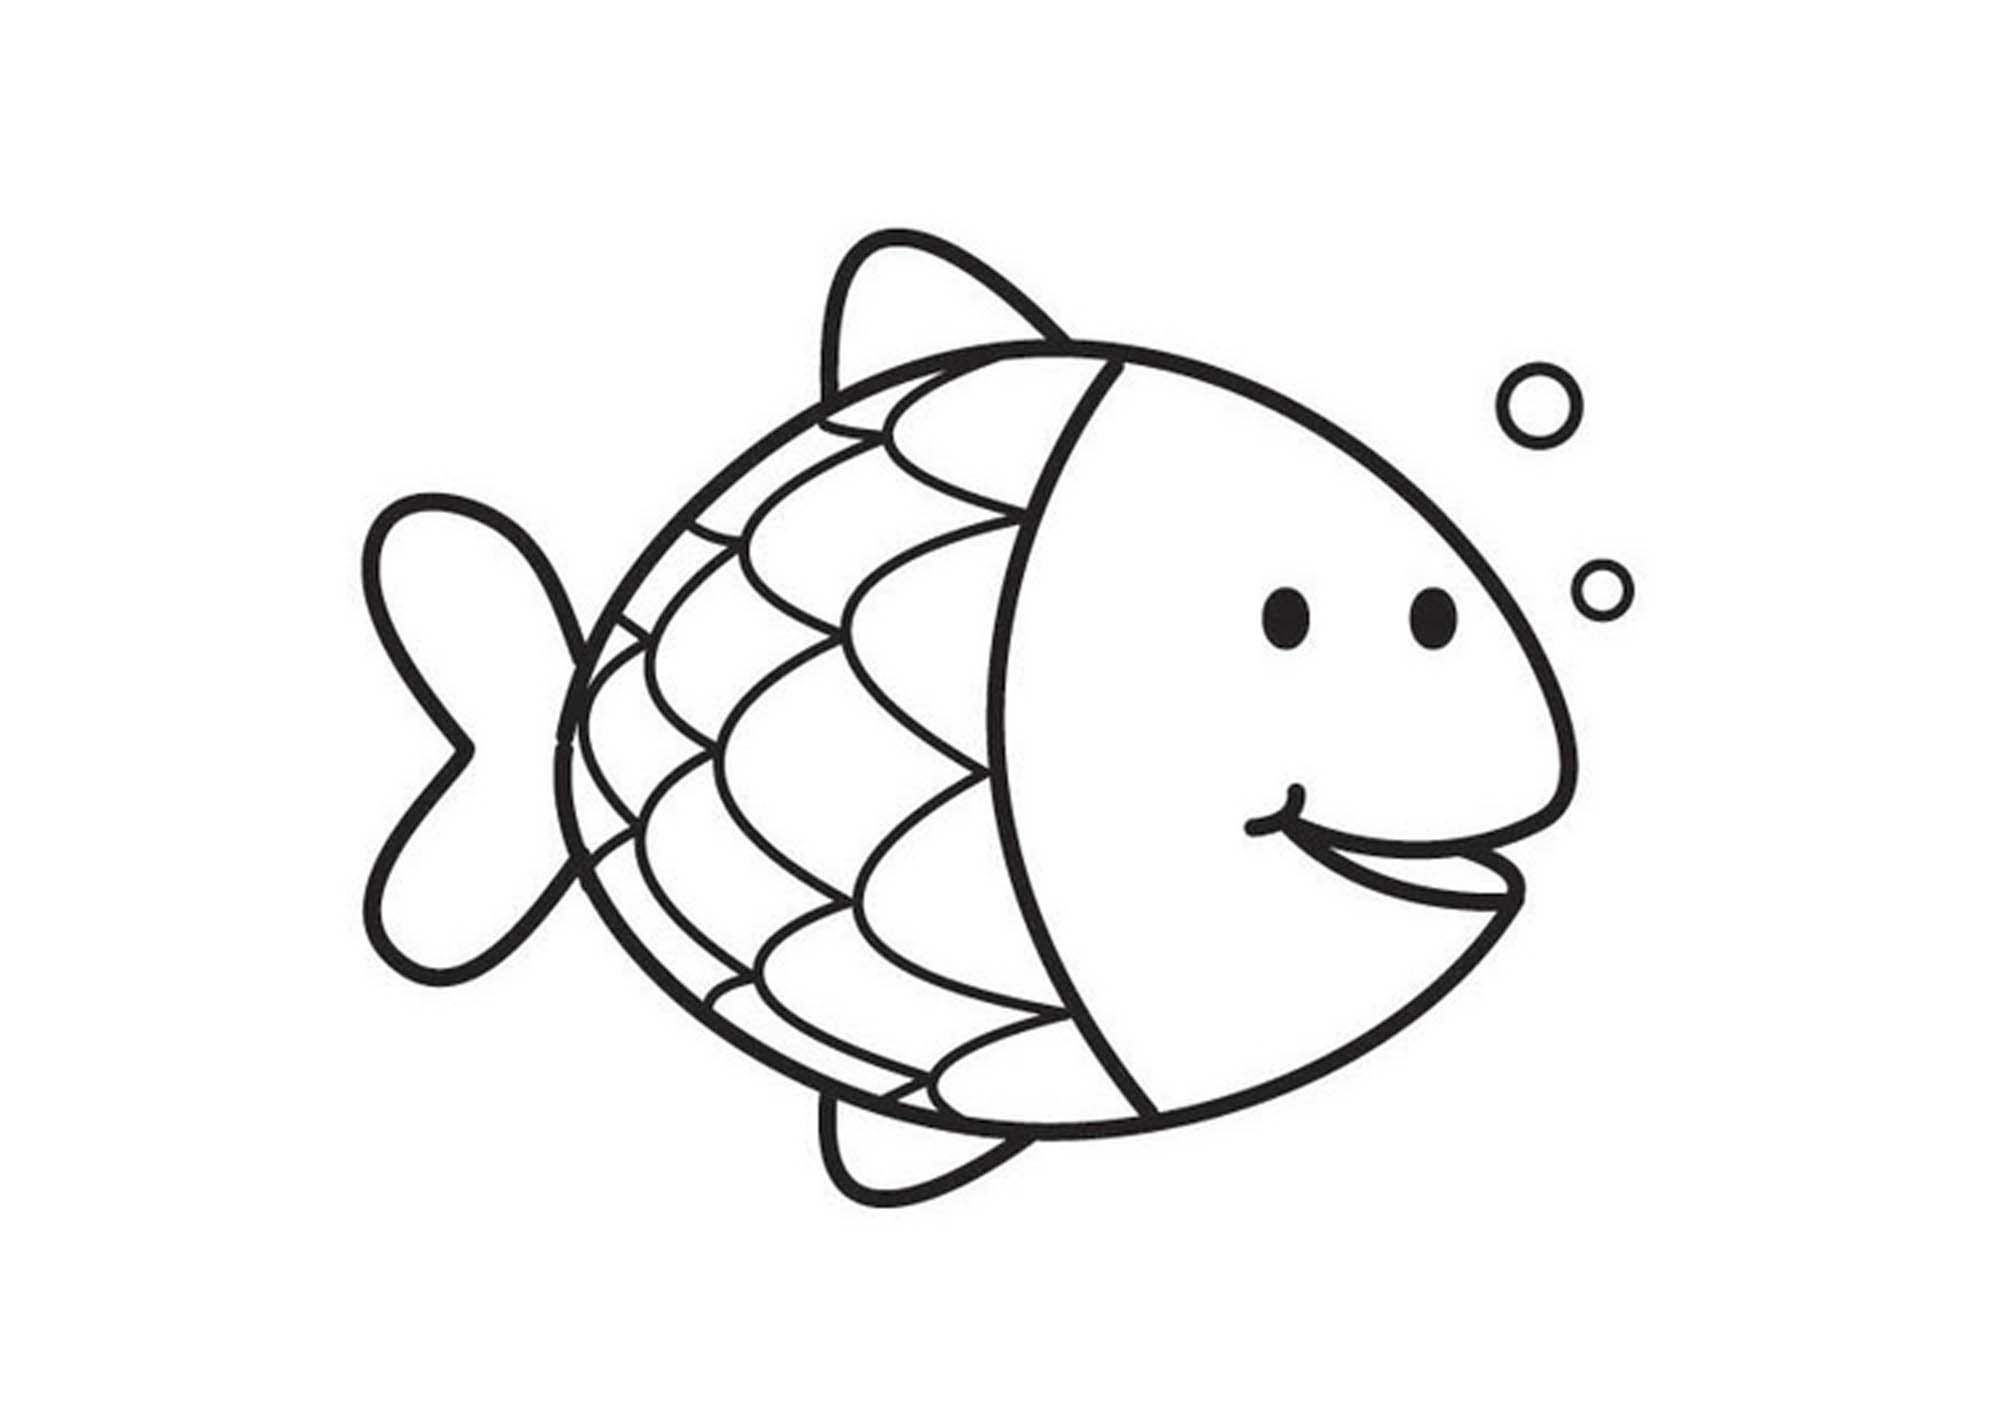 photograph regarding Free Printable Fish Coloring Pages called Print Down load - Lovable and Educative Fish Coloring Web pages